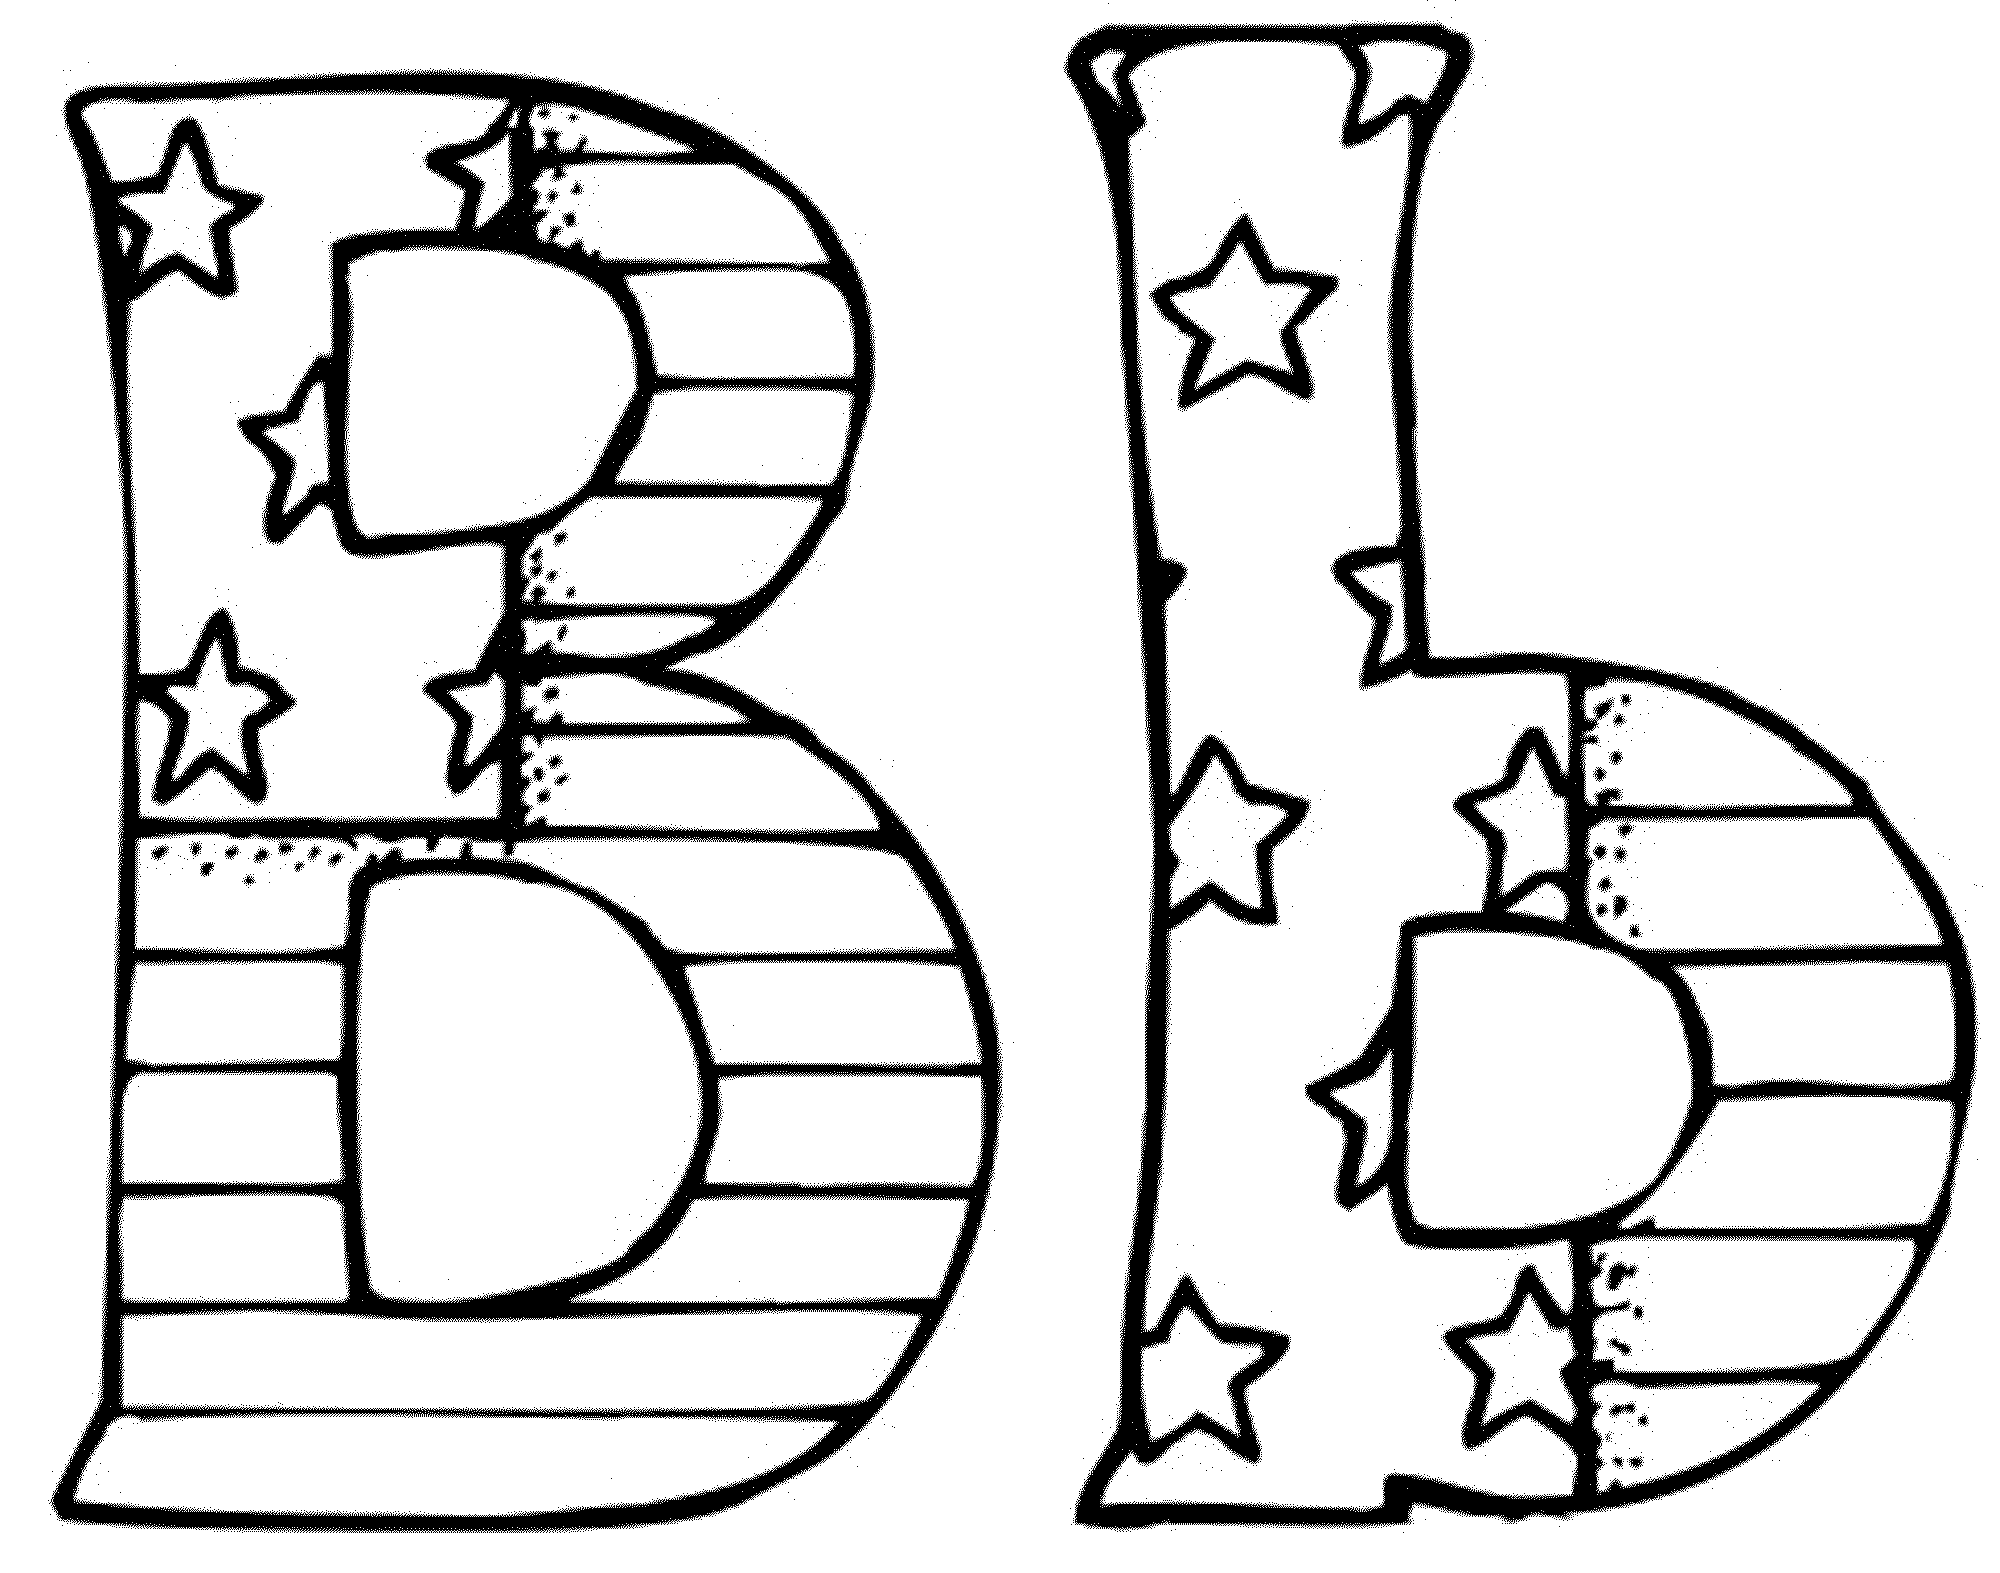 letter b coloring letter b coloring pages to download and print for free b coloring letter